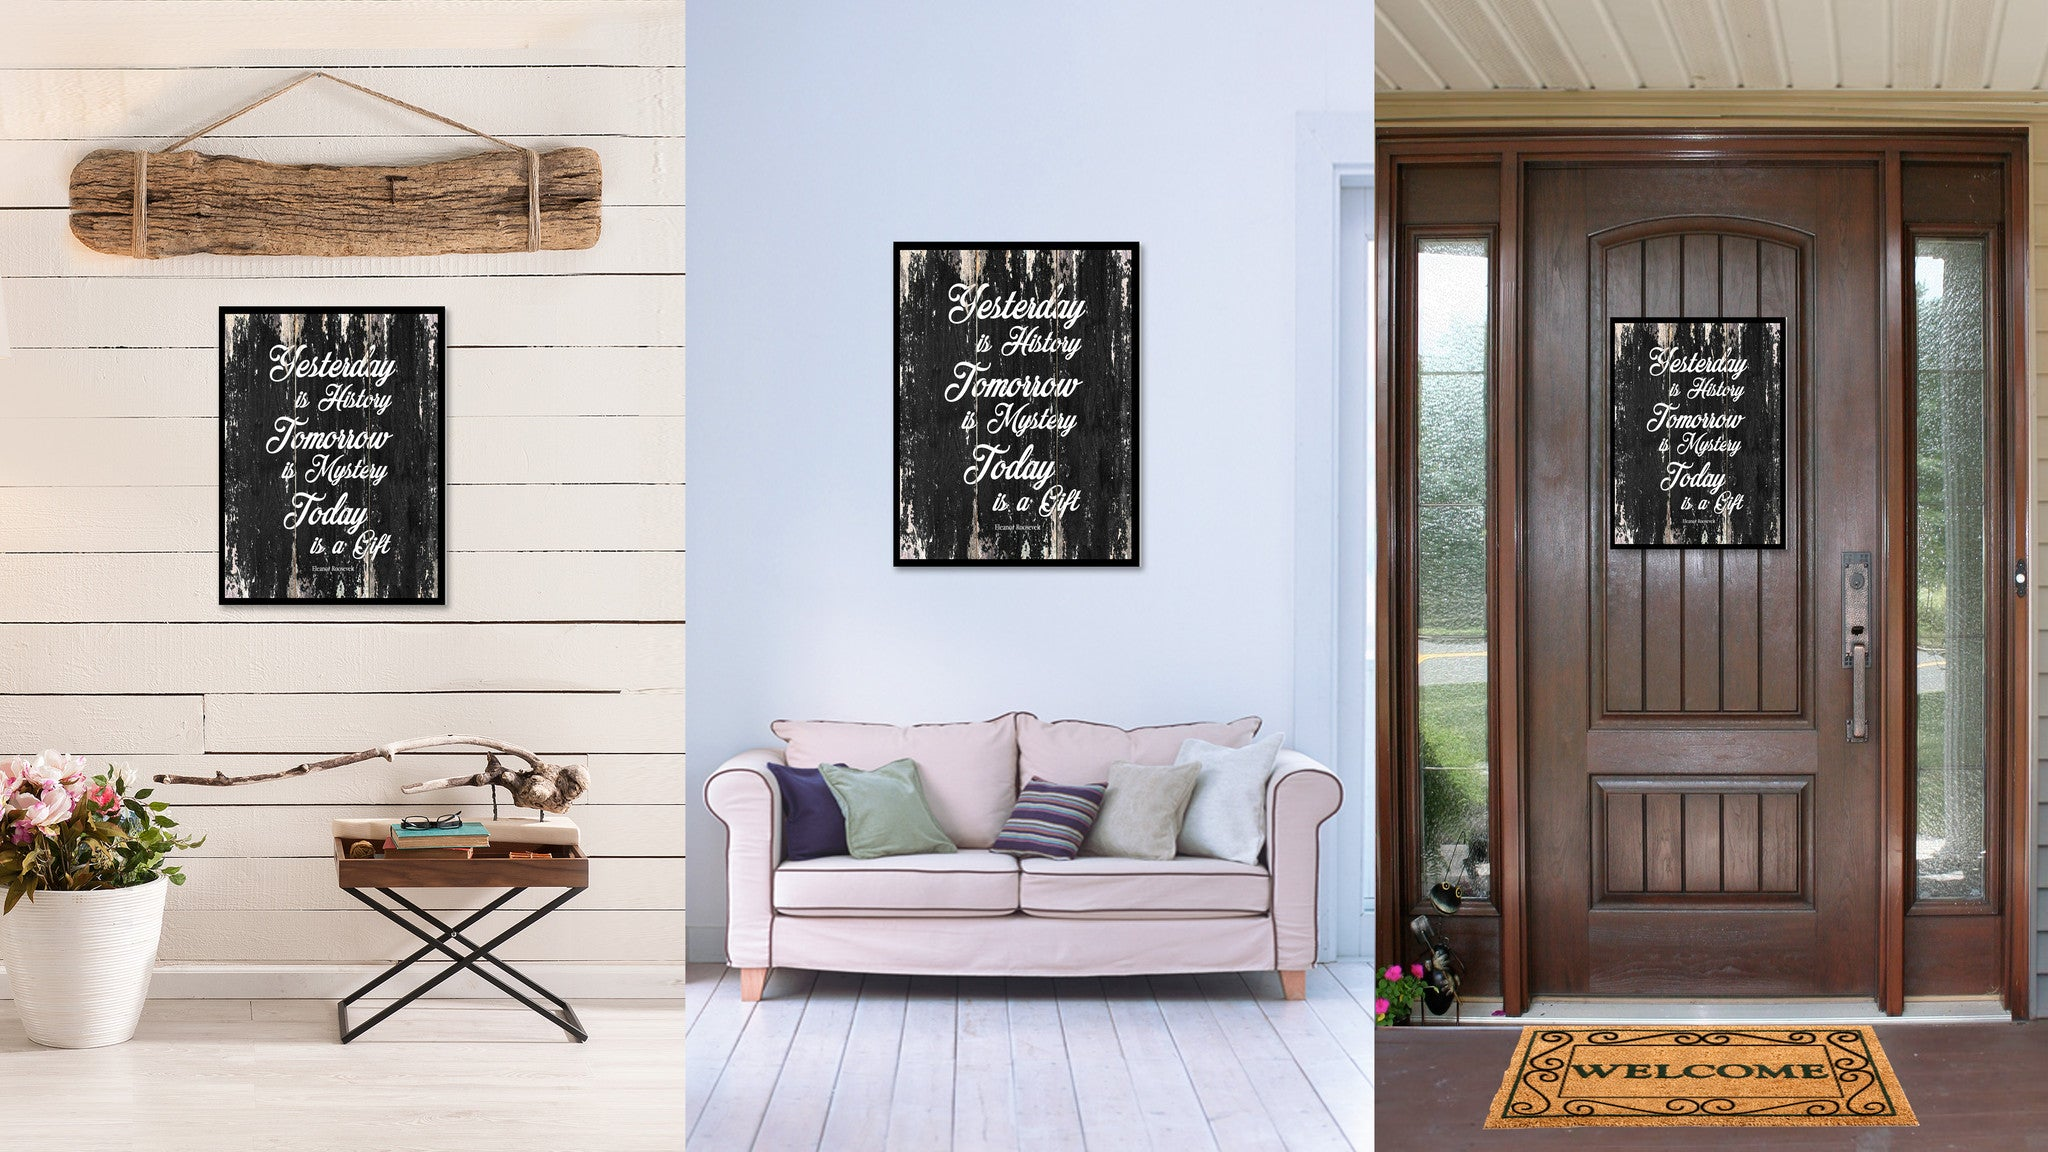 Yesterday is history tomorrow is mystery today is a gift Motivational Quote Saying Canvas Print with Picture Frame Home Decor Wall Art